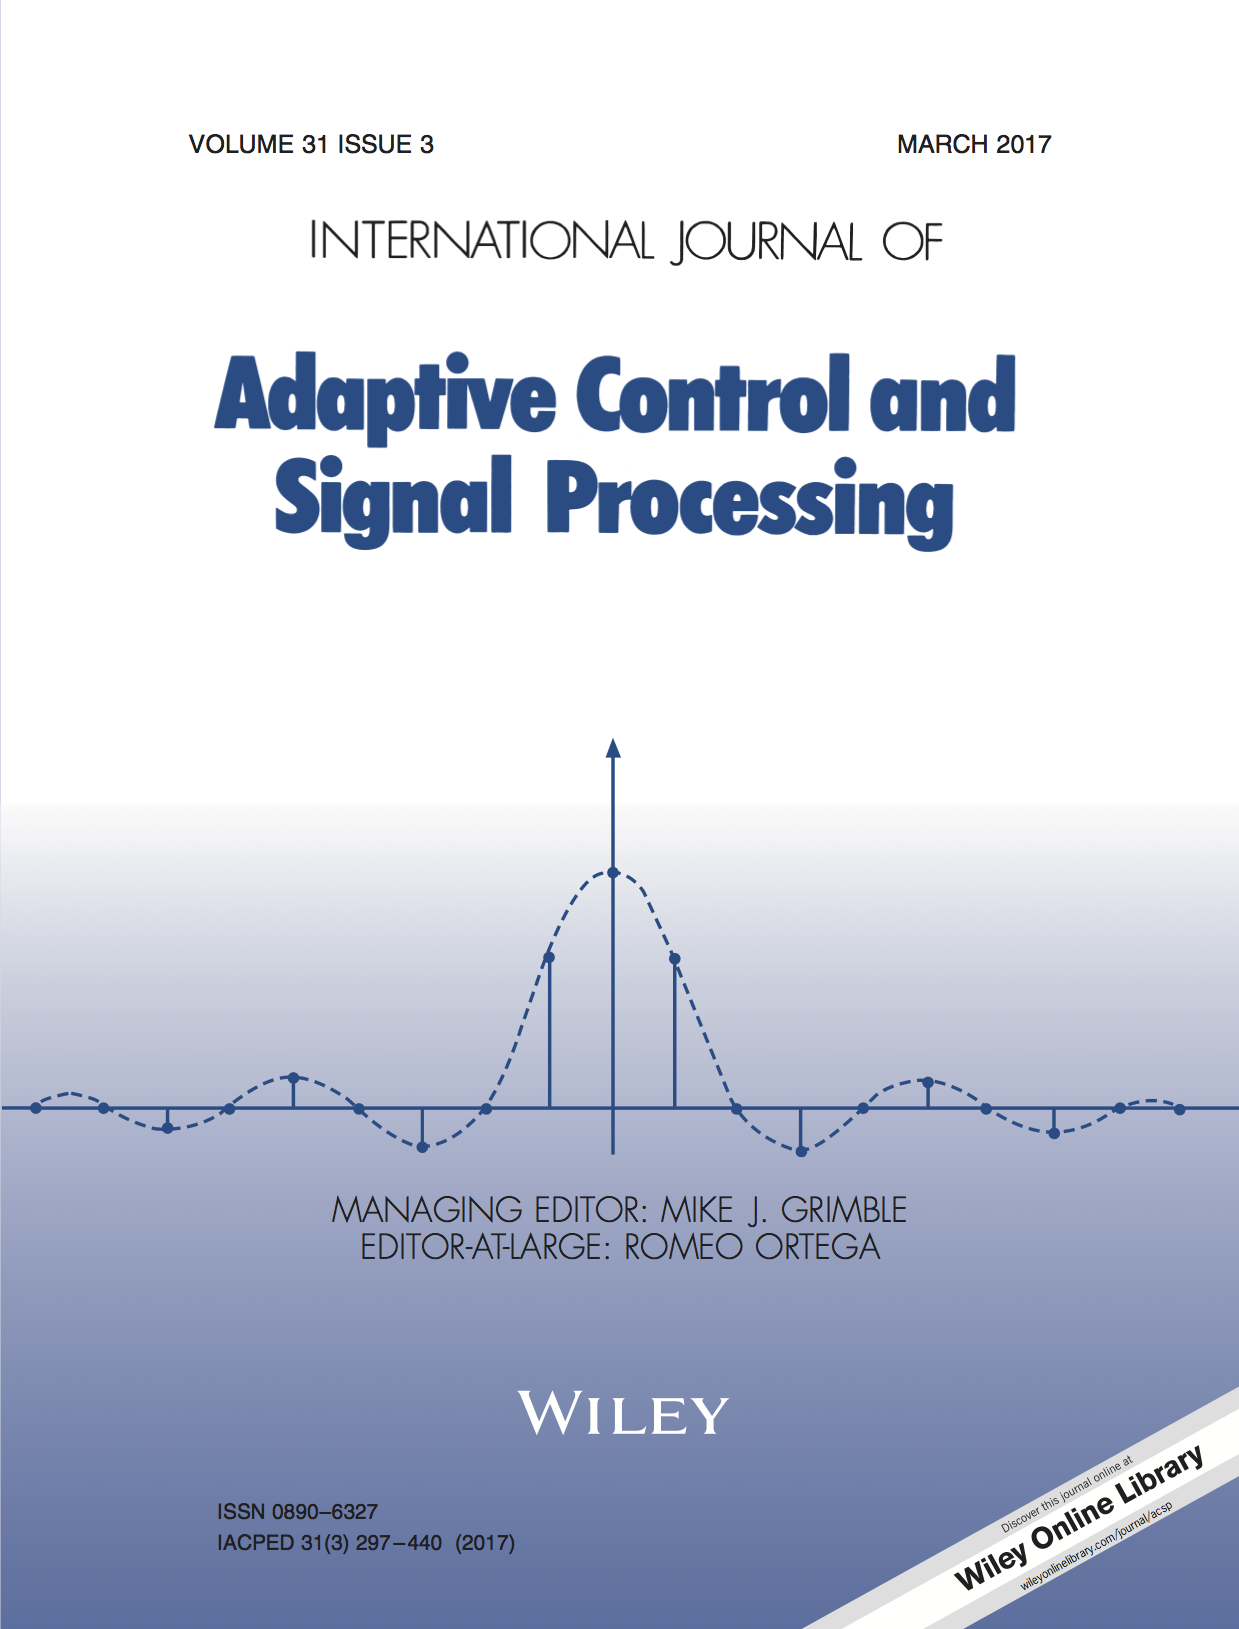 Template for submissions to International Journal of Adaptive Control and Signal Processing